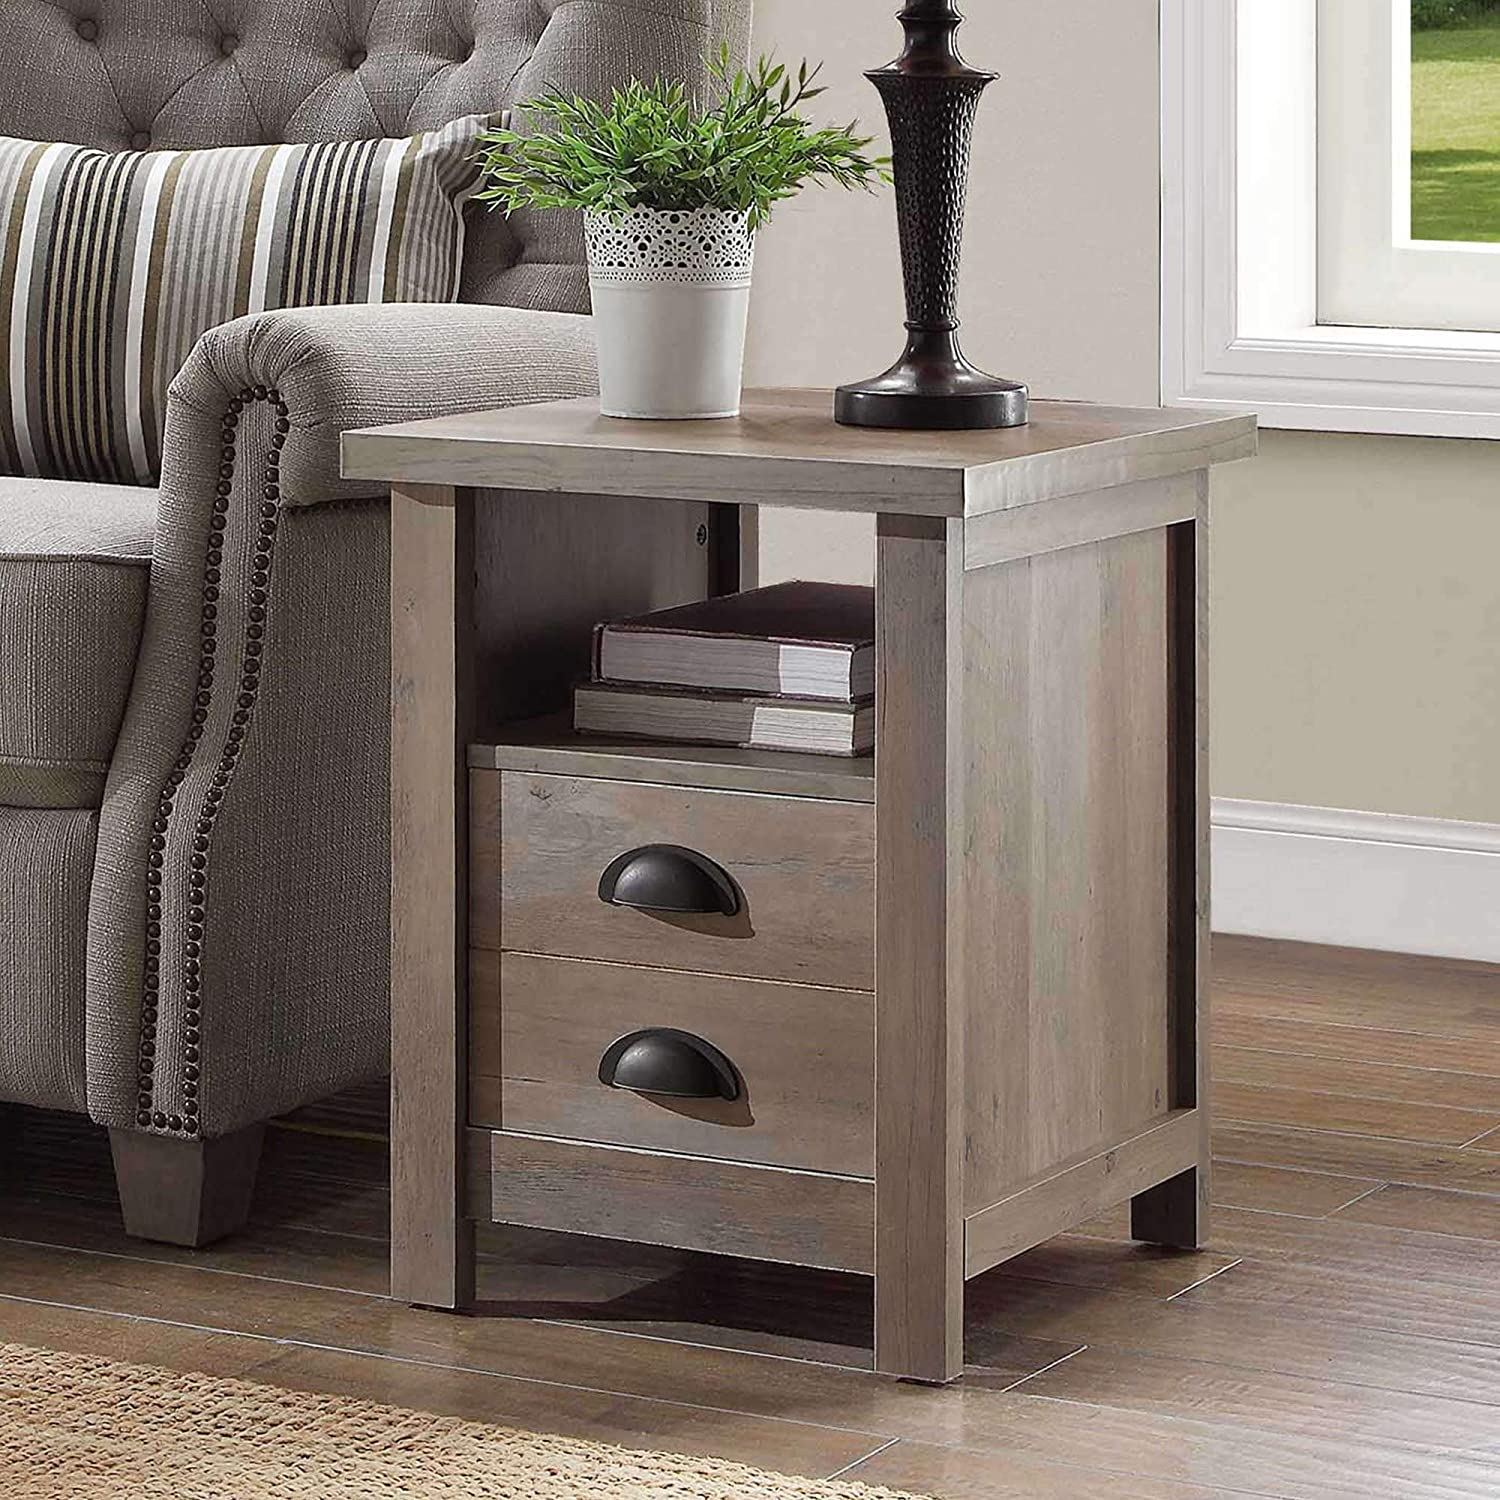 Better Homes and Gardens Granary Modern Farmhouse End Table - Rustic Gray